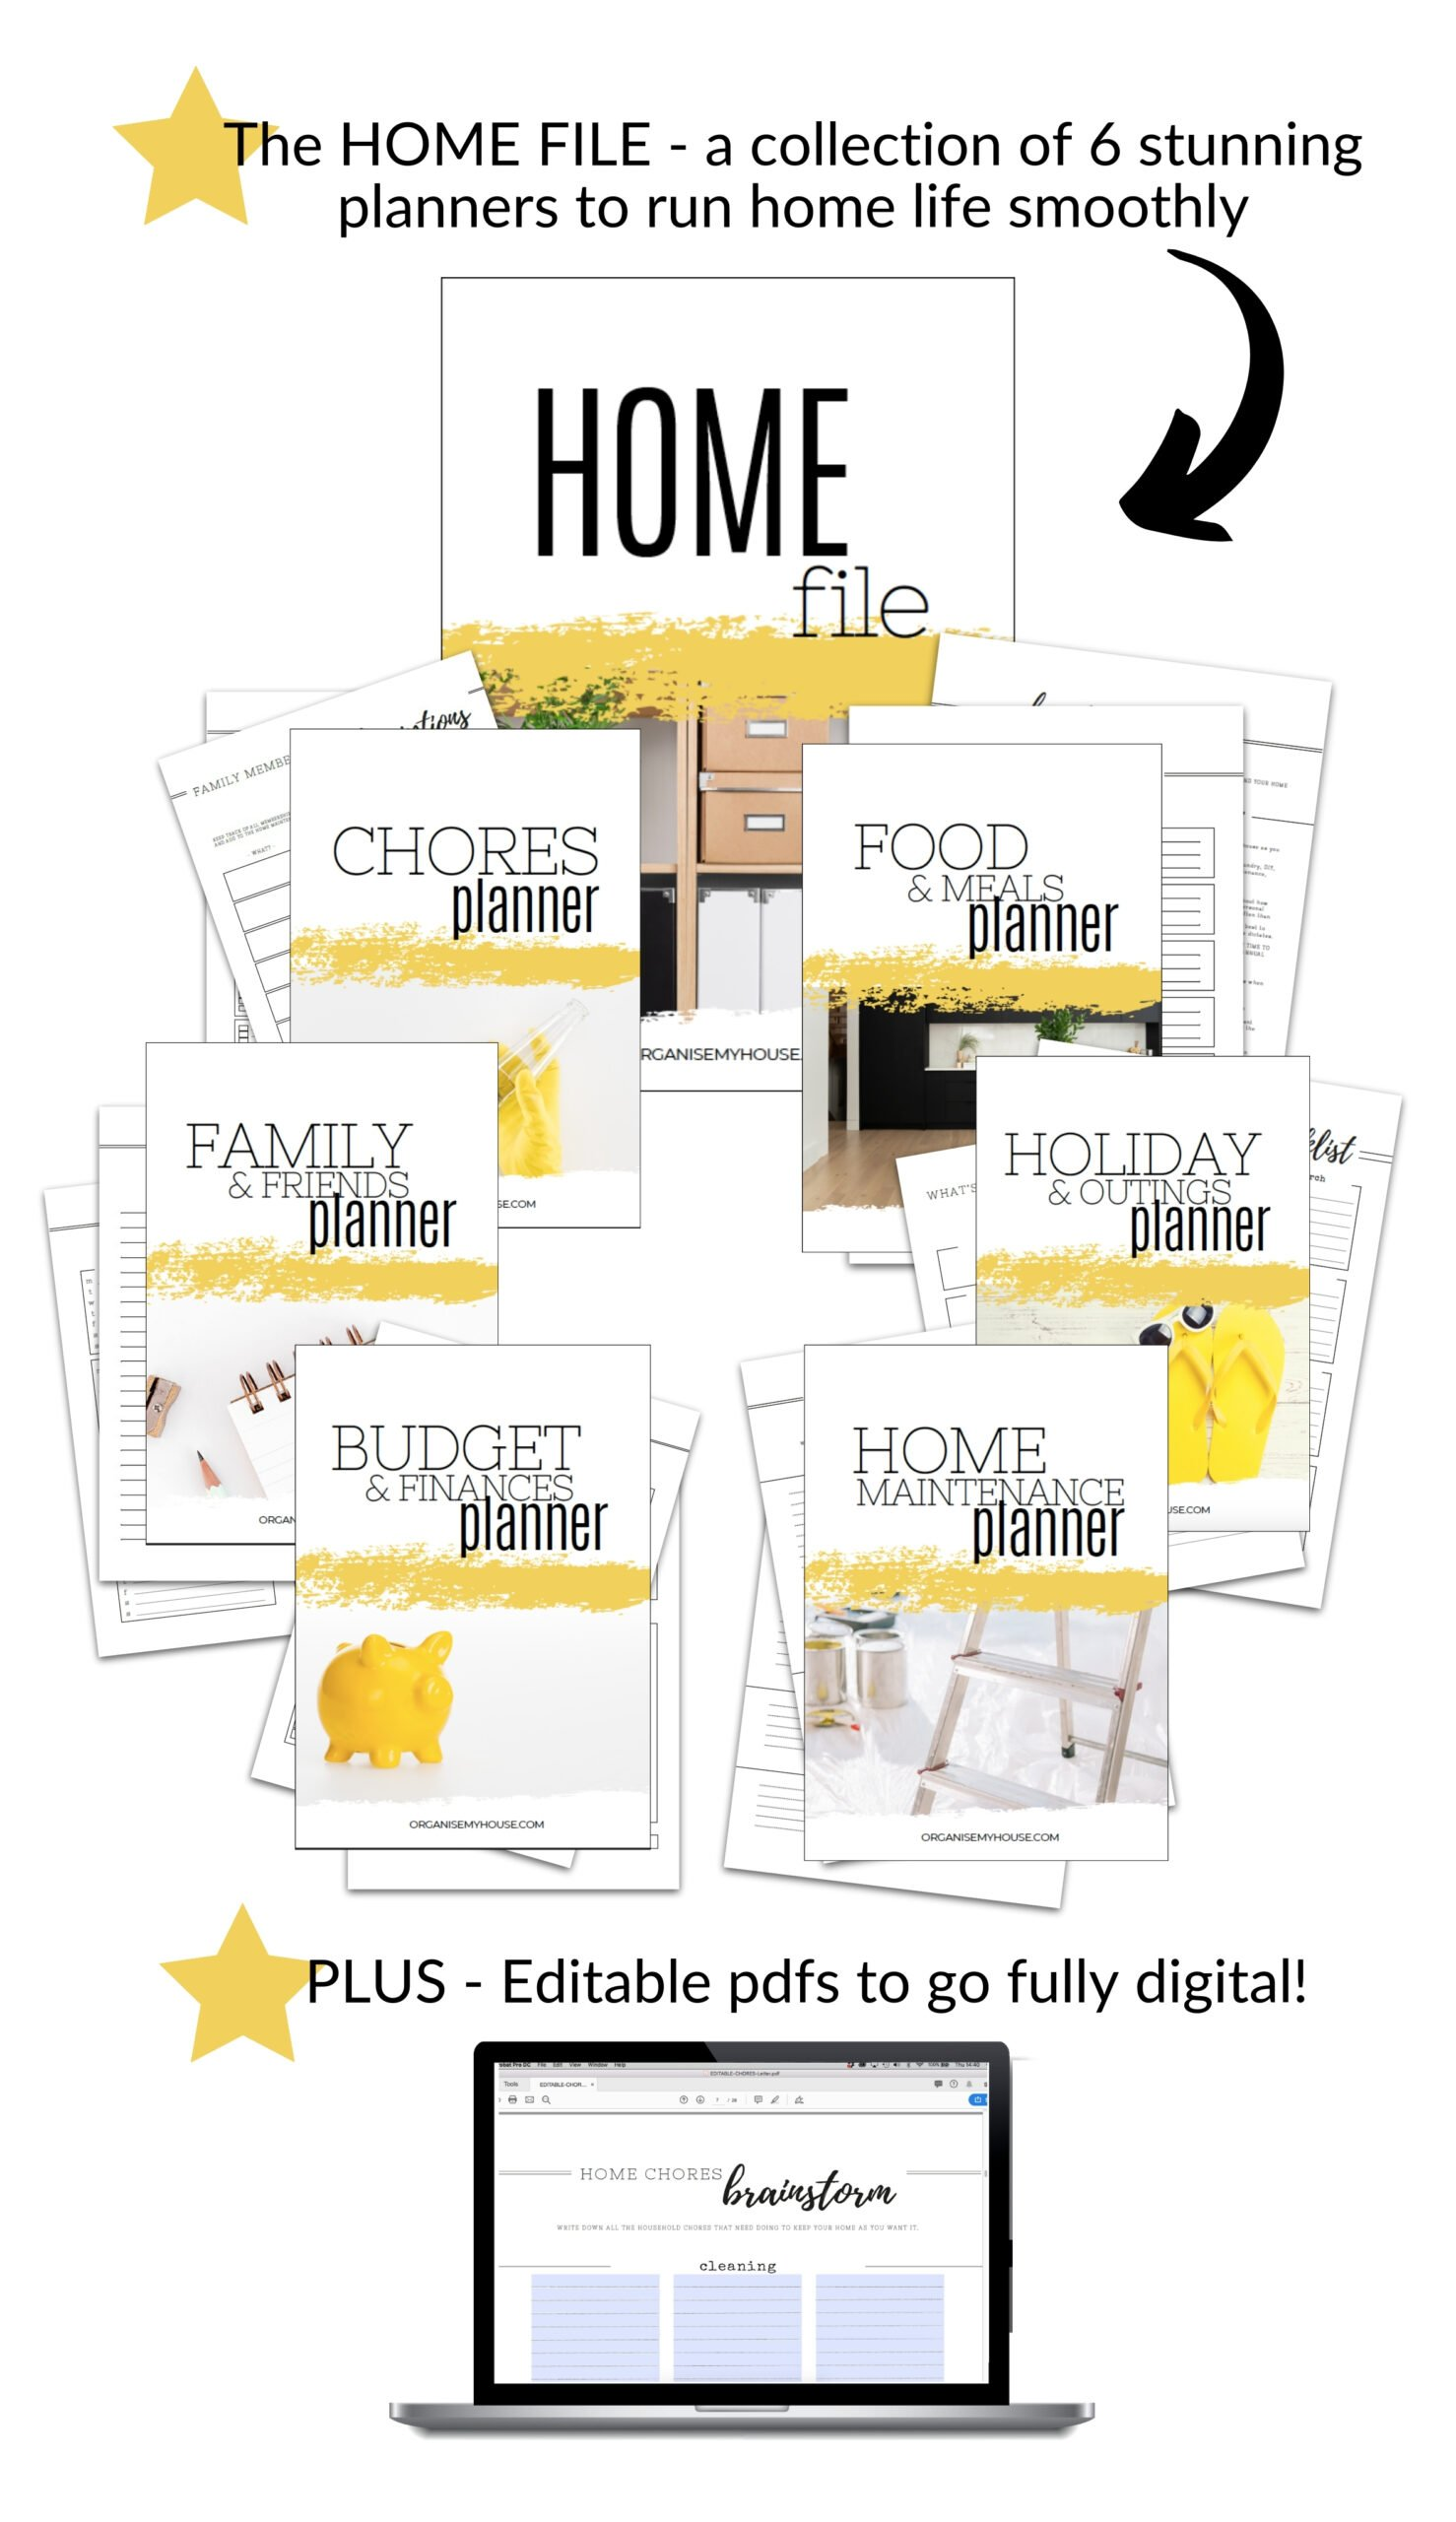 Home Management Binder - Home File - Contents